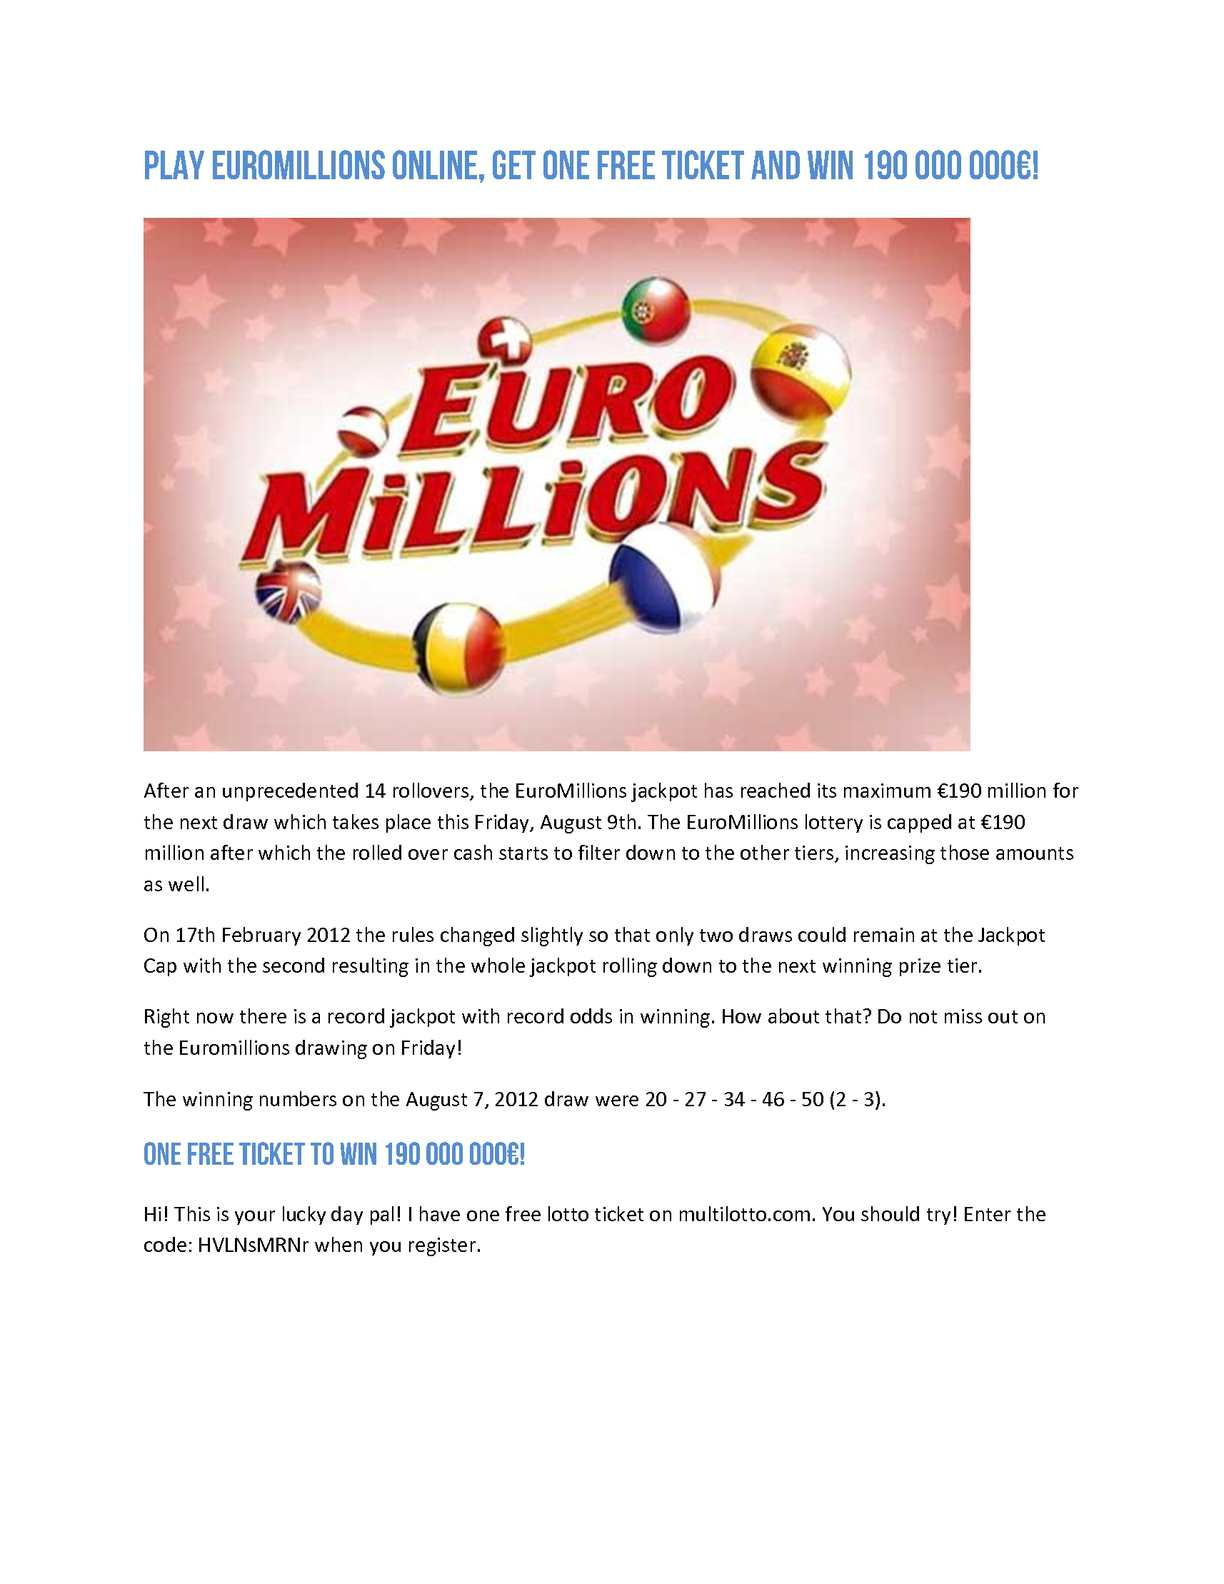 Calaméo - Play EuroMillions Online, Get One Free Ticket And Win 190